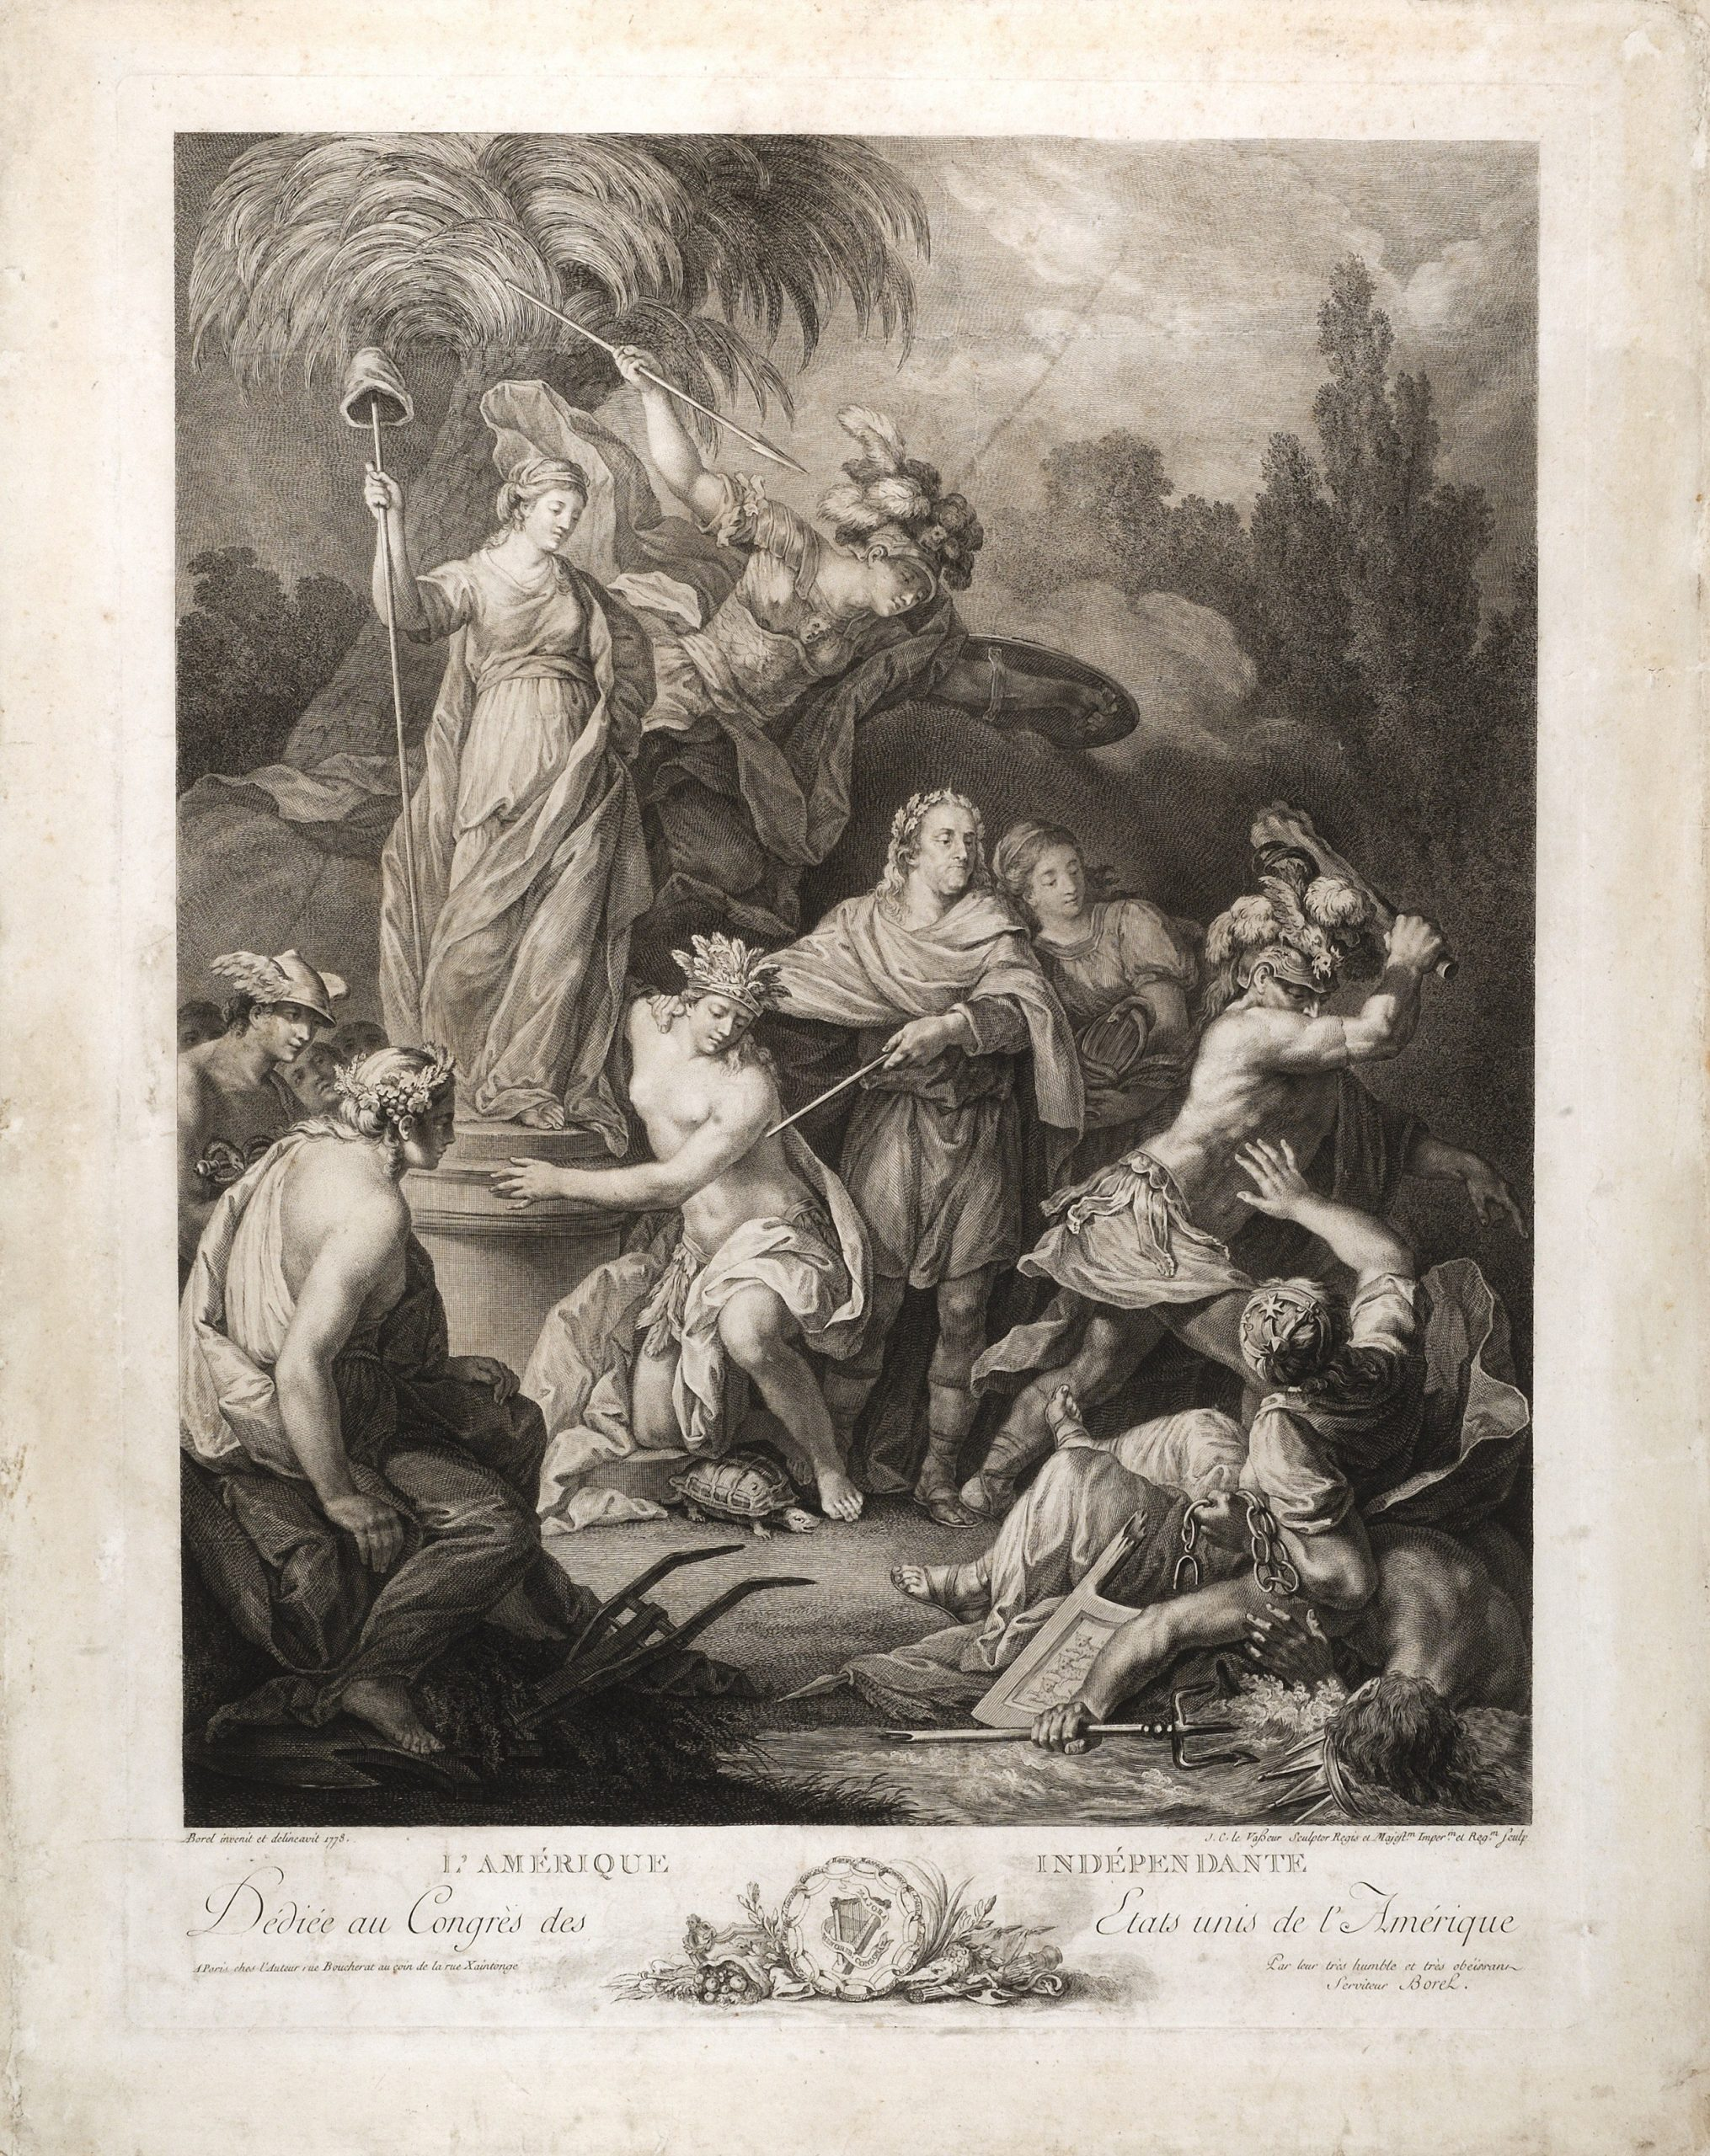 This allegorical print about American independence is one of ten great Revolutionary War prints.